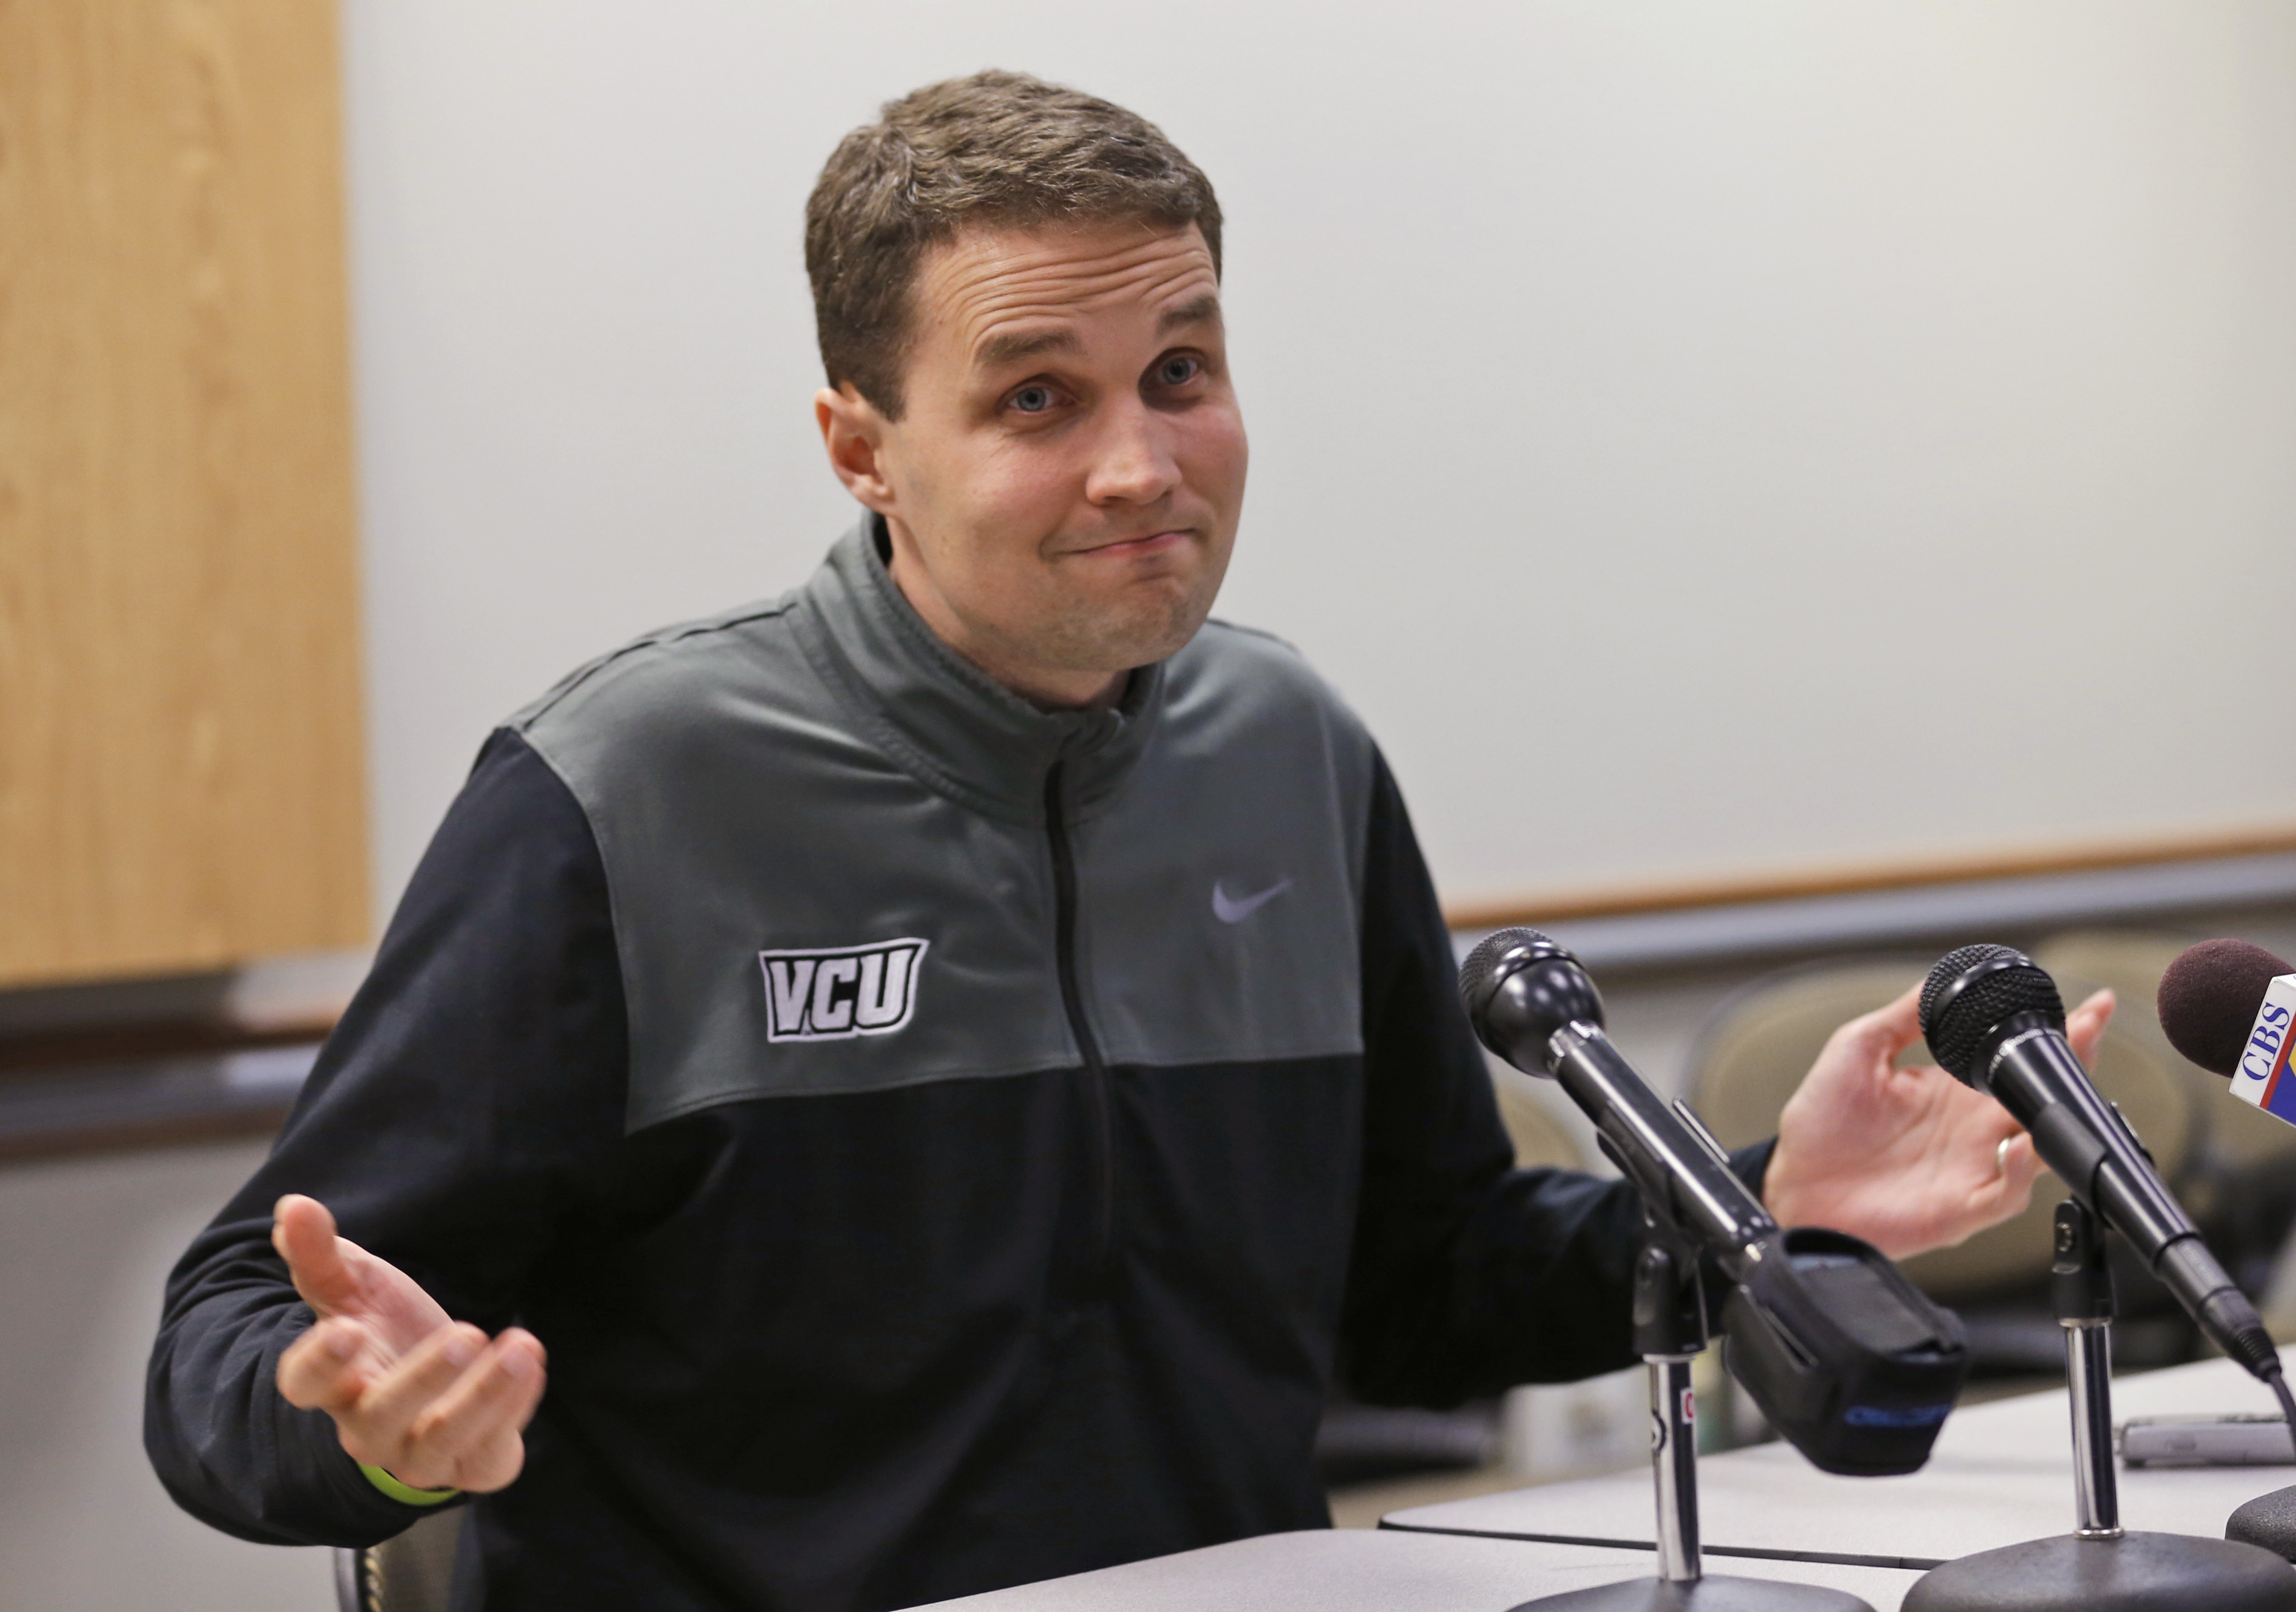 VCU men's basketball coach Wade to earn $1 million annually